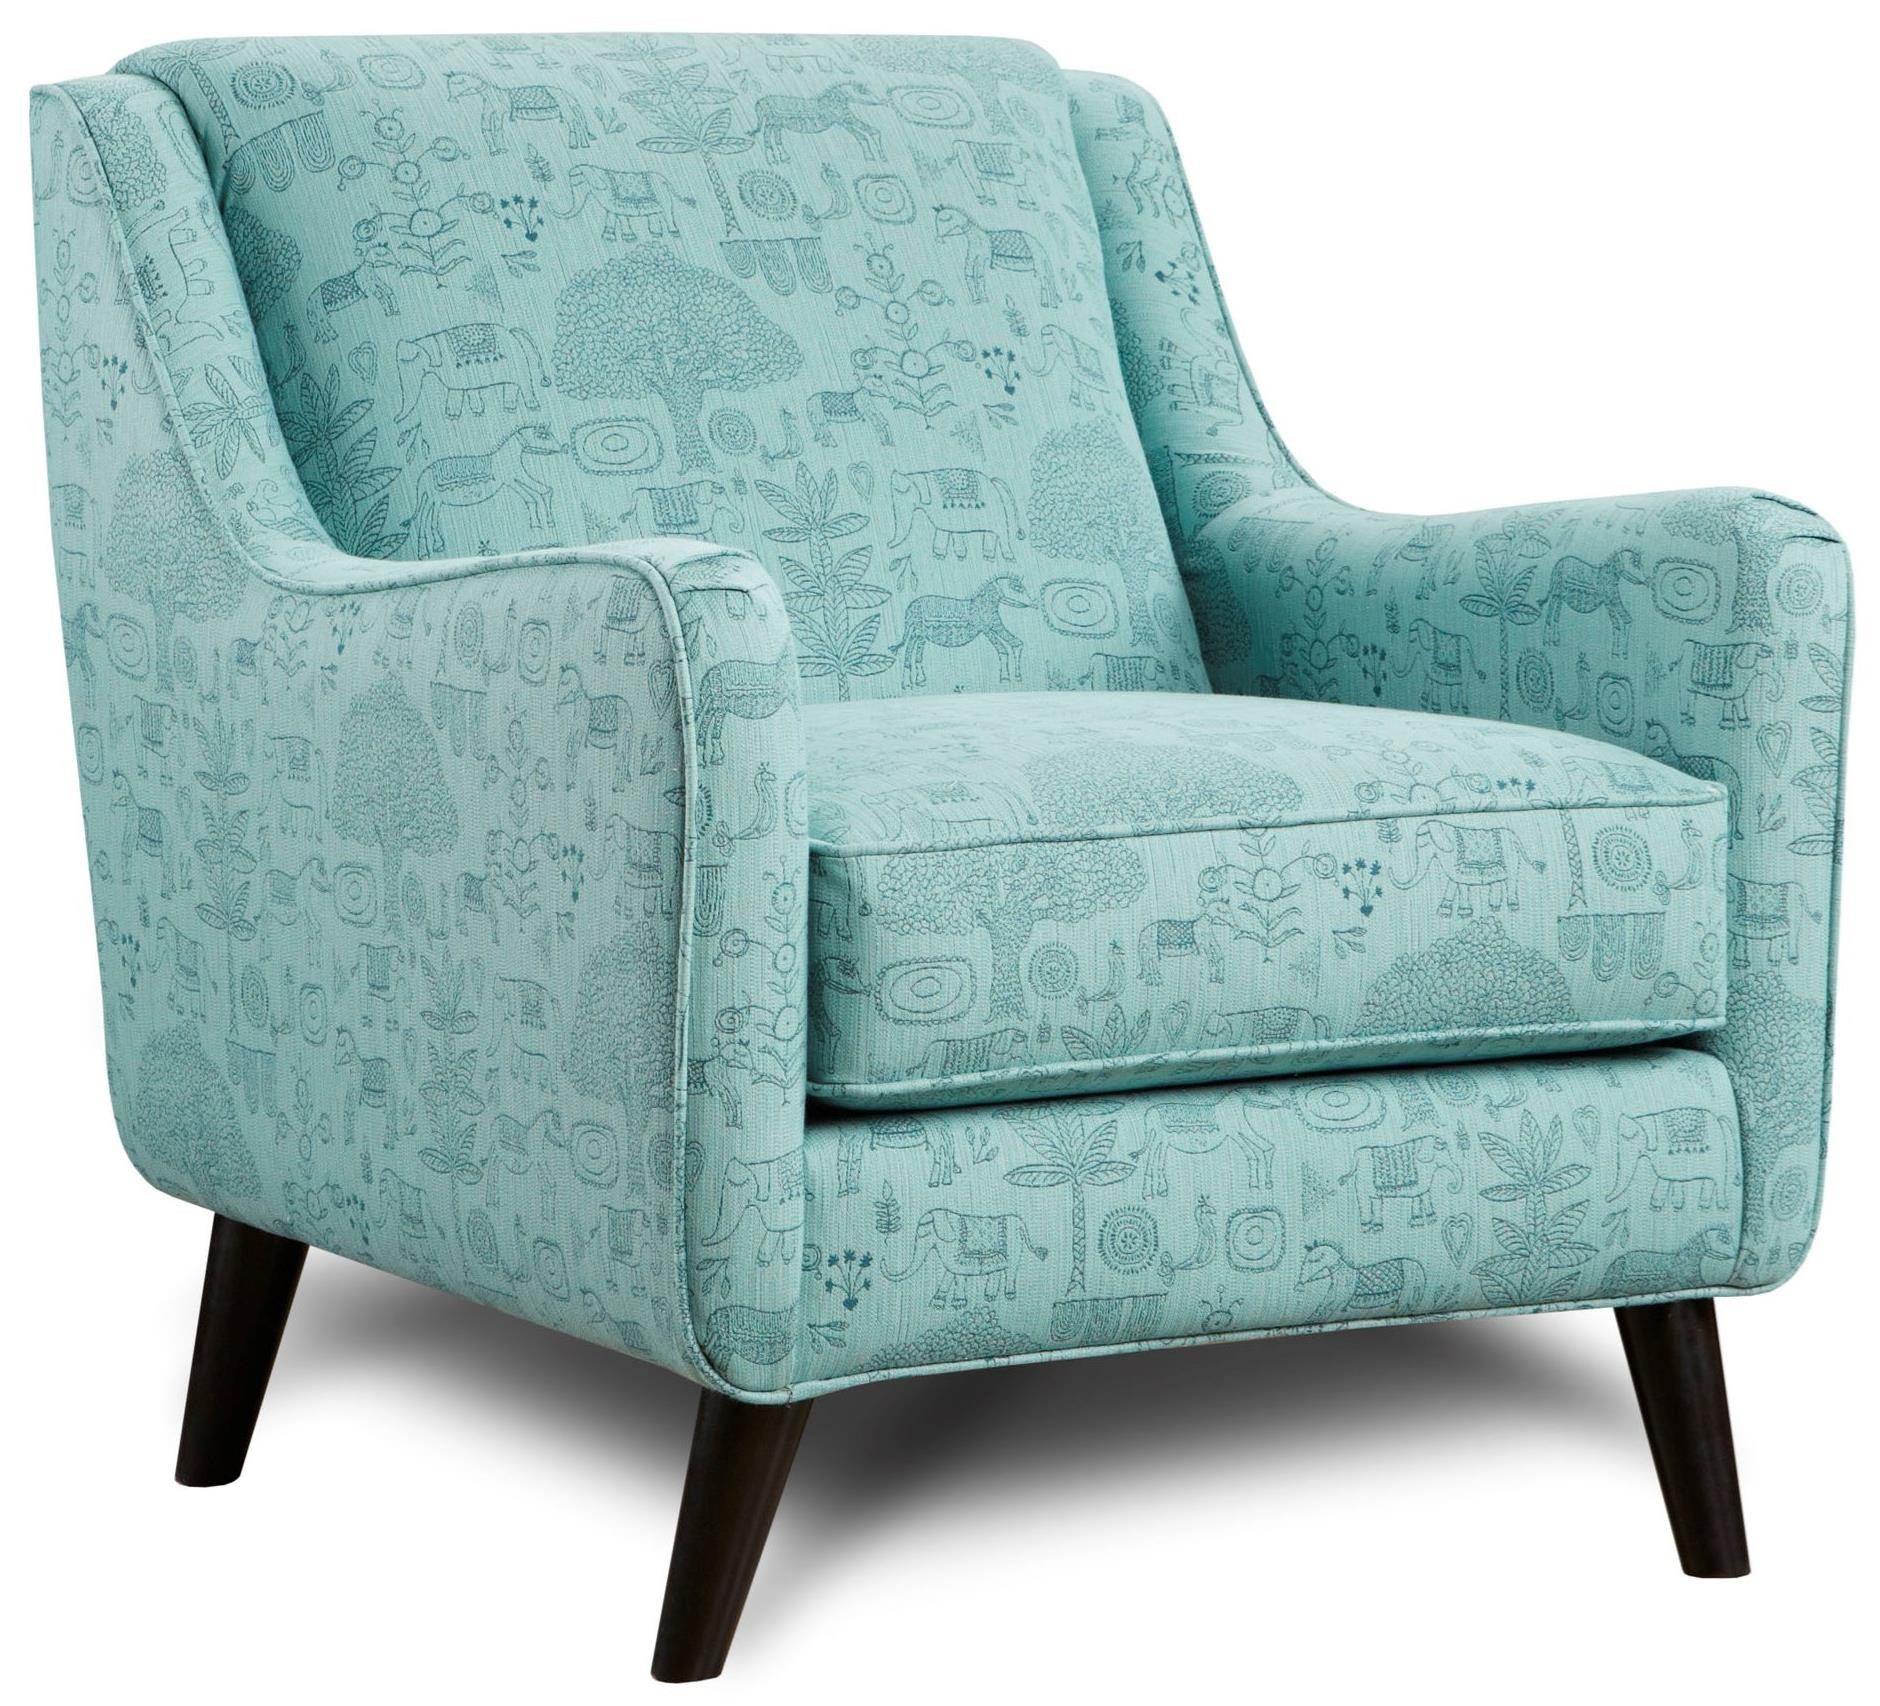 VFM Signature 240 Chair - Item Number: 240JB Fancy Forest Calypso